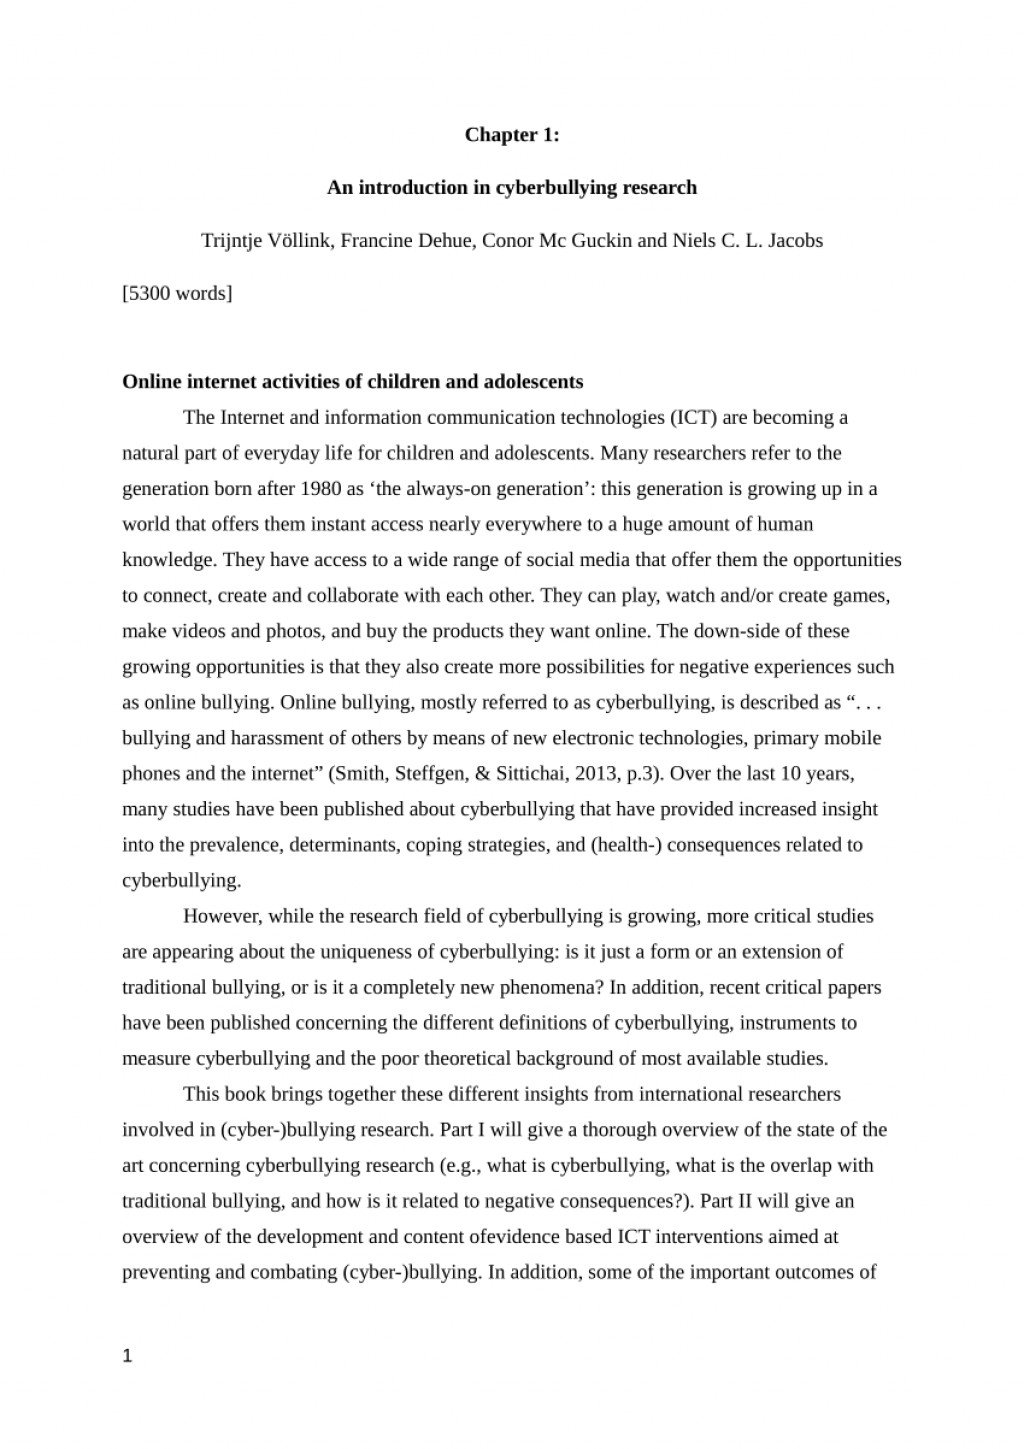 001 Cyberbullying Research Articles Paper Wondrous About Chapter 1 Studies Cyber Bullying Journal Pdf Large